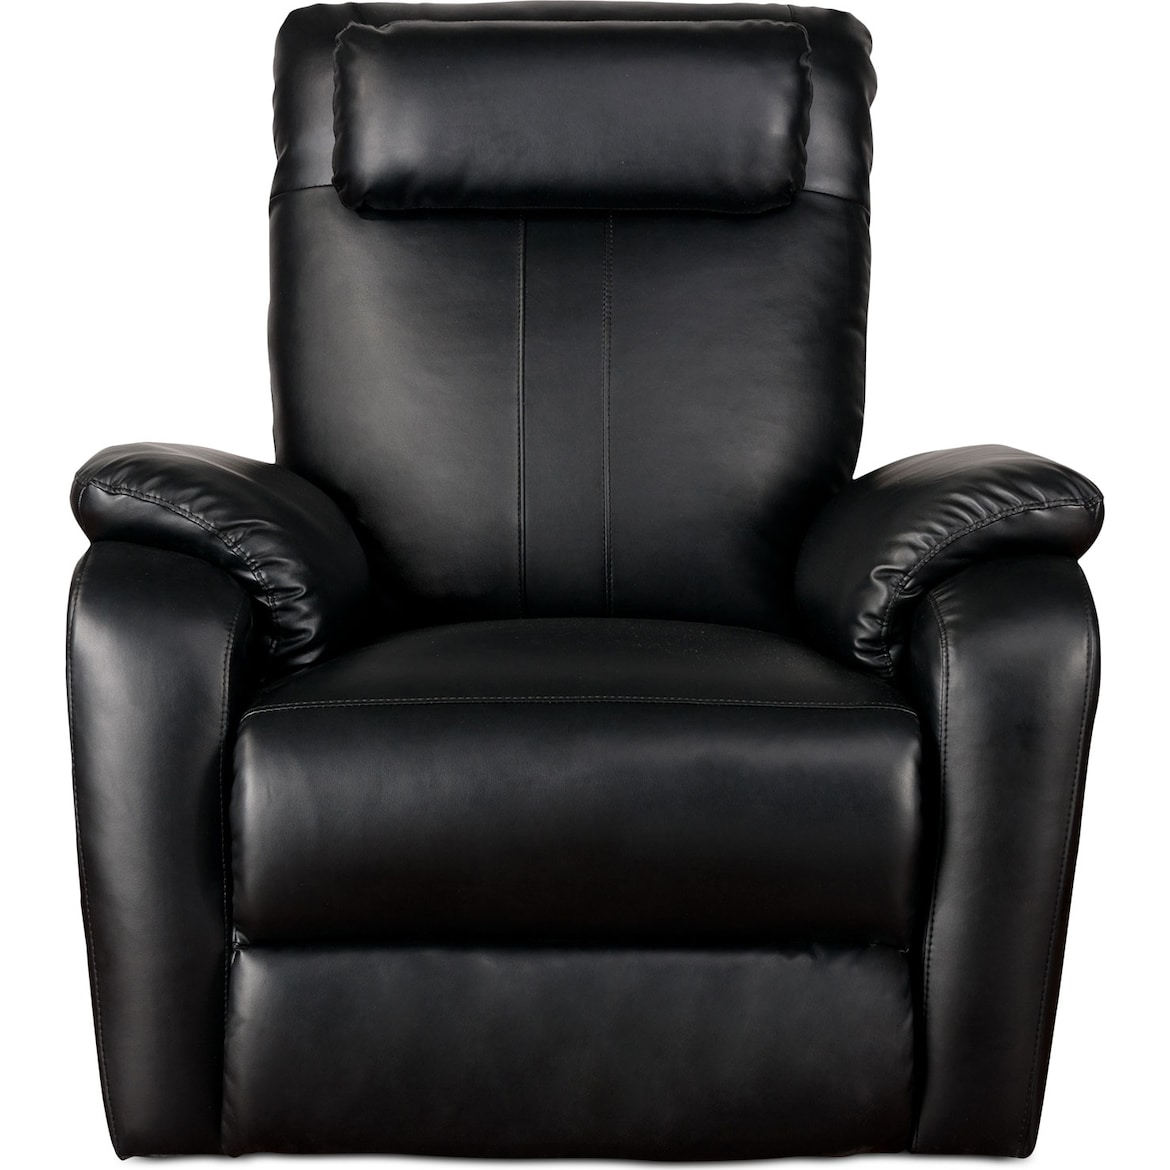 Sparta Rocker Recliner   Value City Furniture and Mattresses on Sparta Outdoor Living id=98565